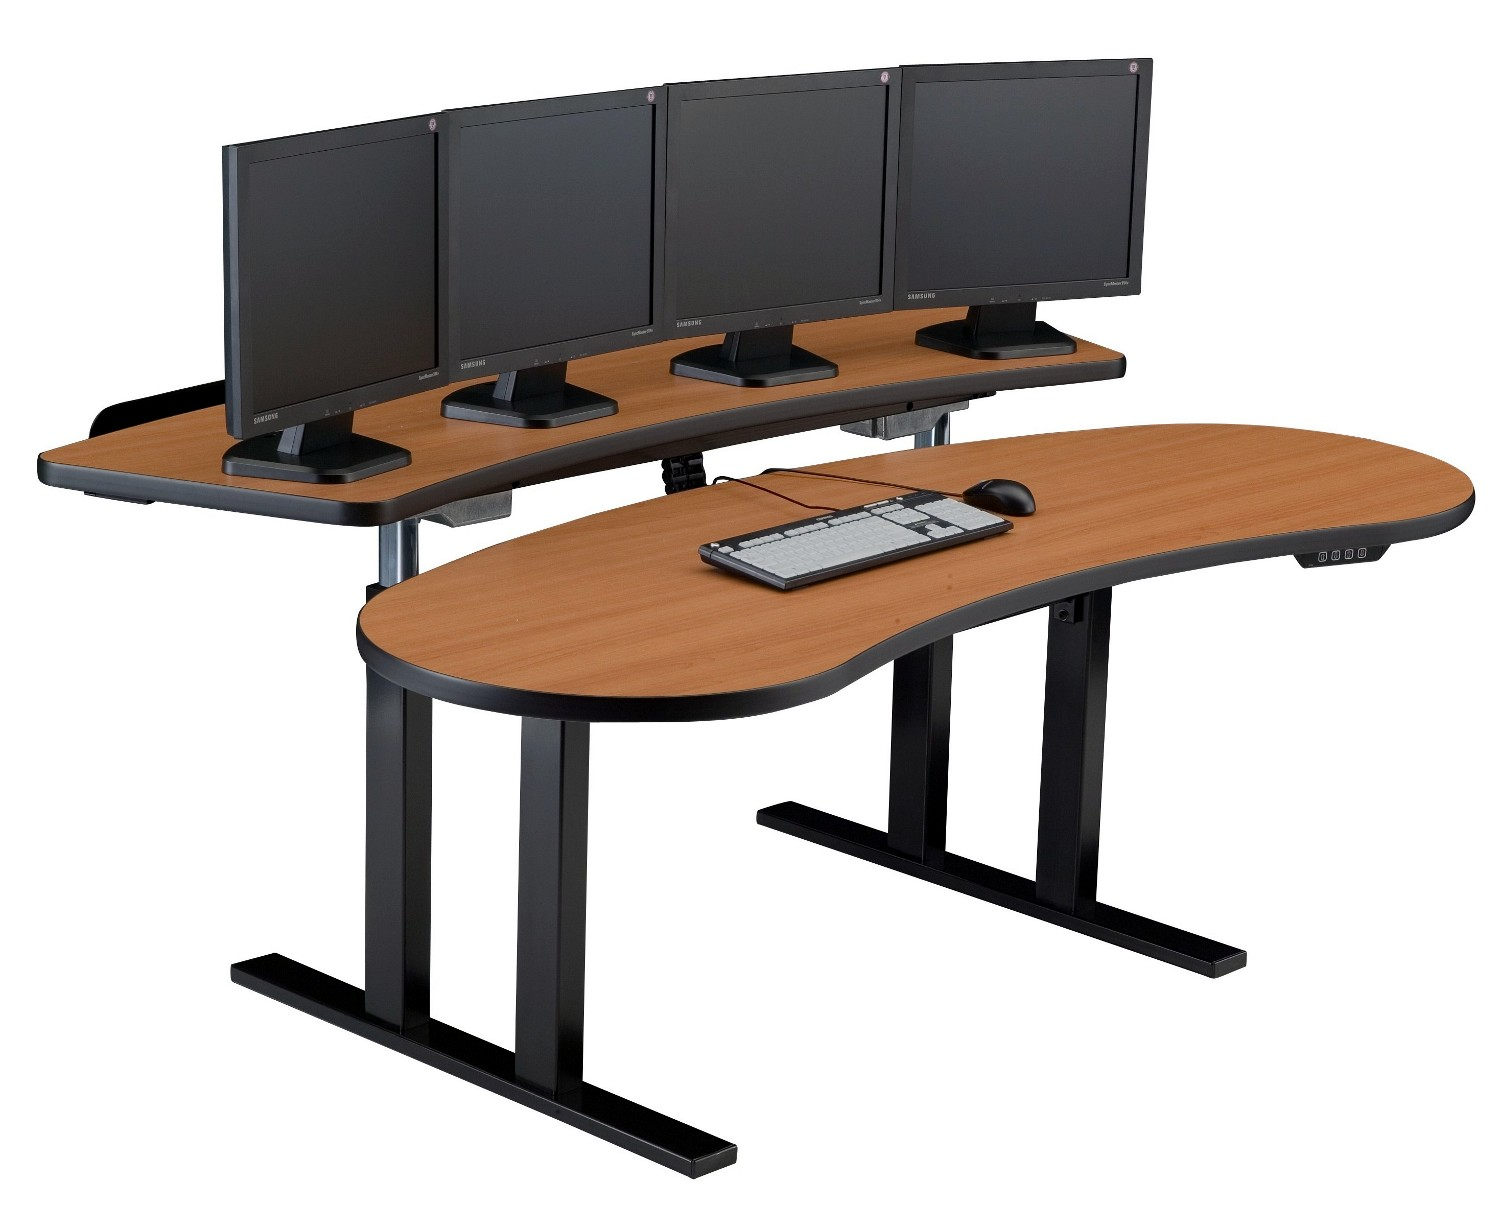 </b></font>PACS Sit Stand Adjustable Computer Desk Curved Back Surface #PACSLGT</font>. <p>RATING:&#11088;&#11088;&#11088;&#11088;&#11088;</b></font></b>